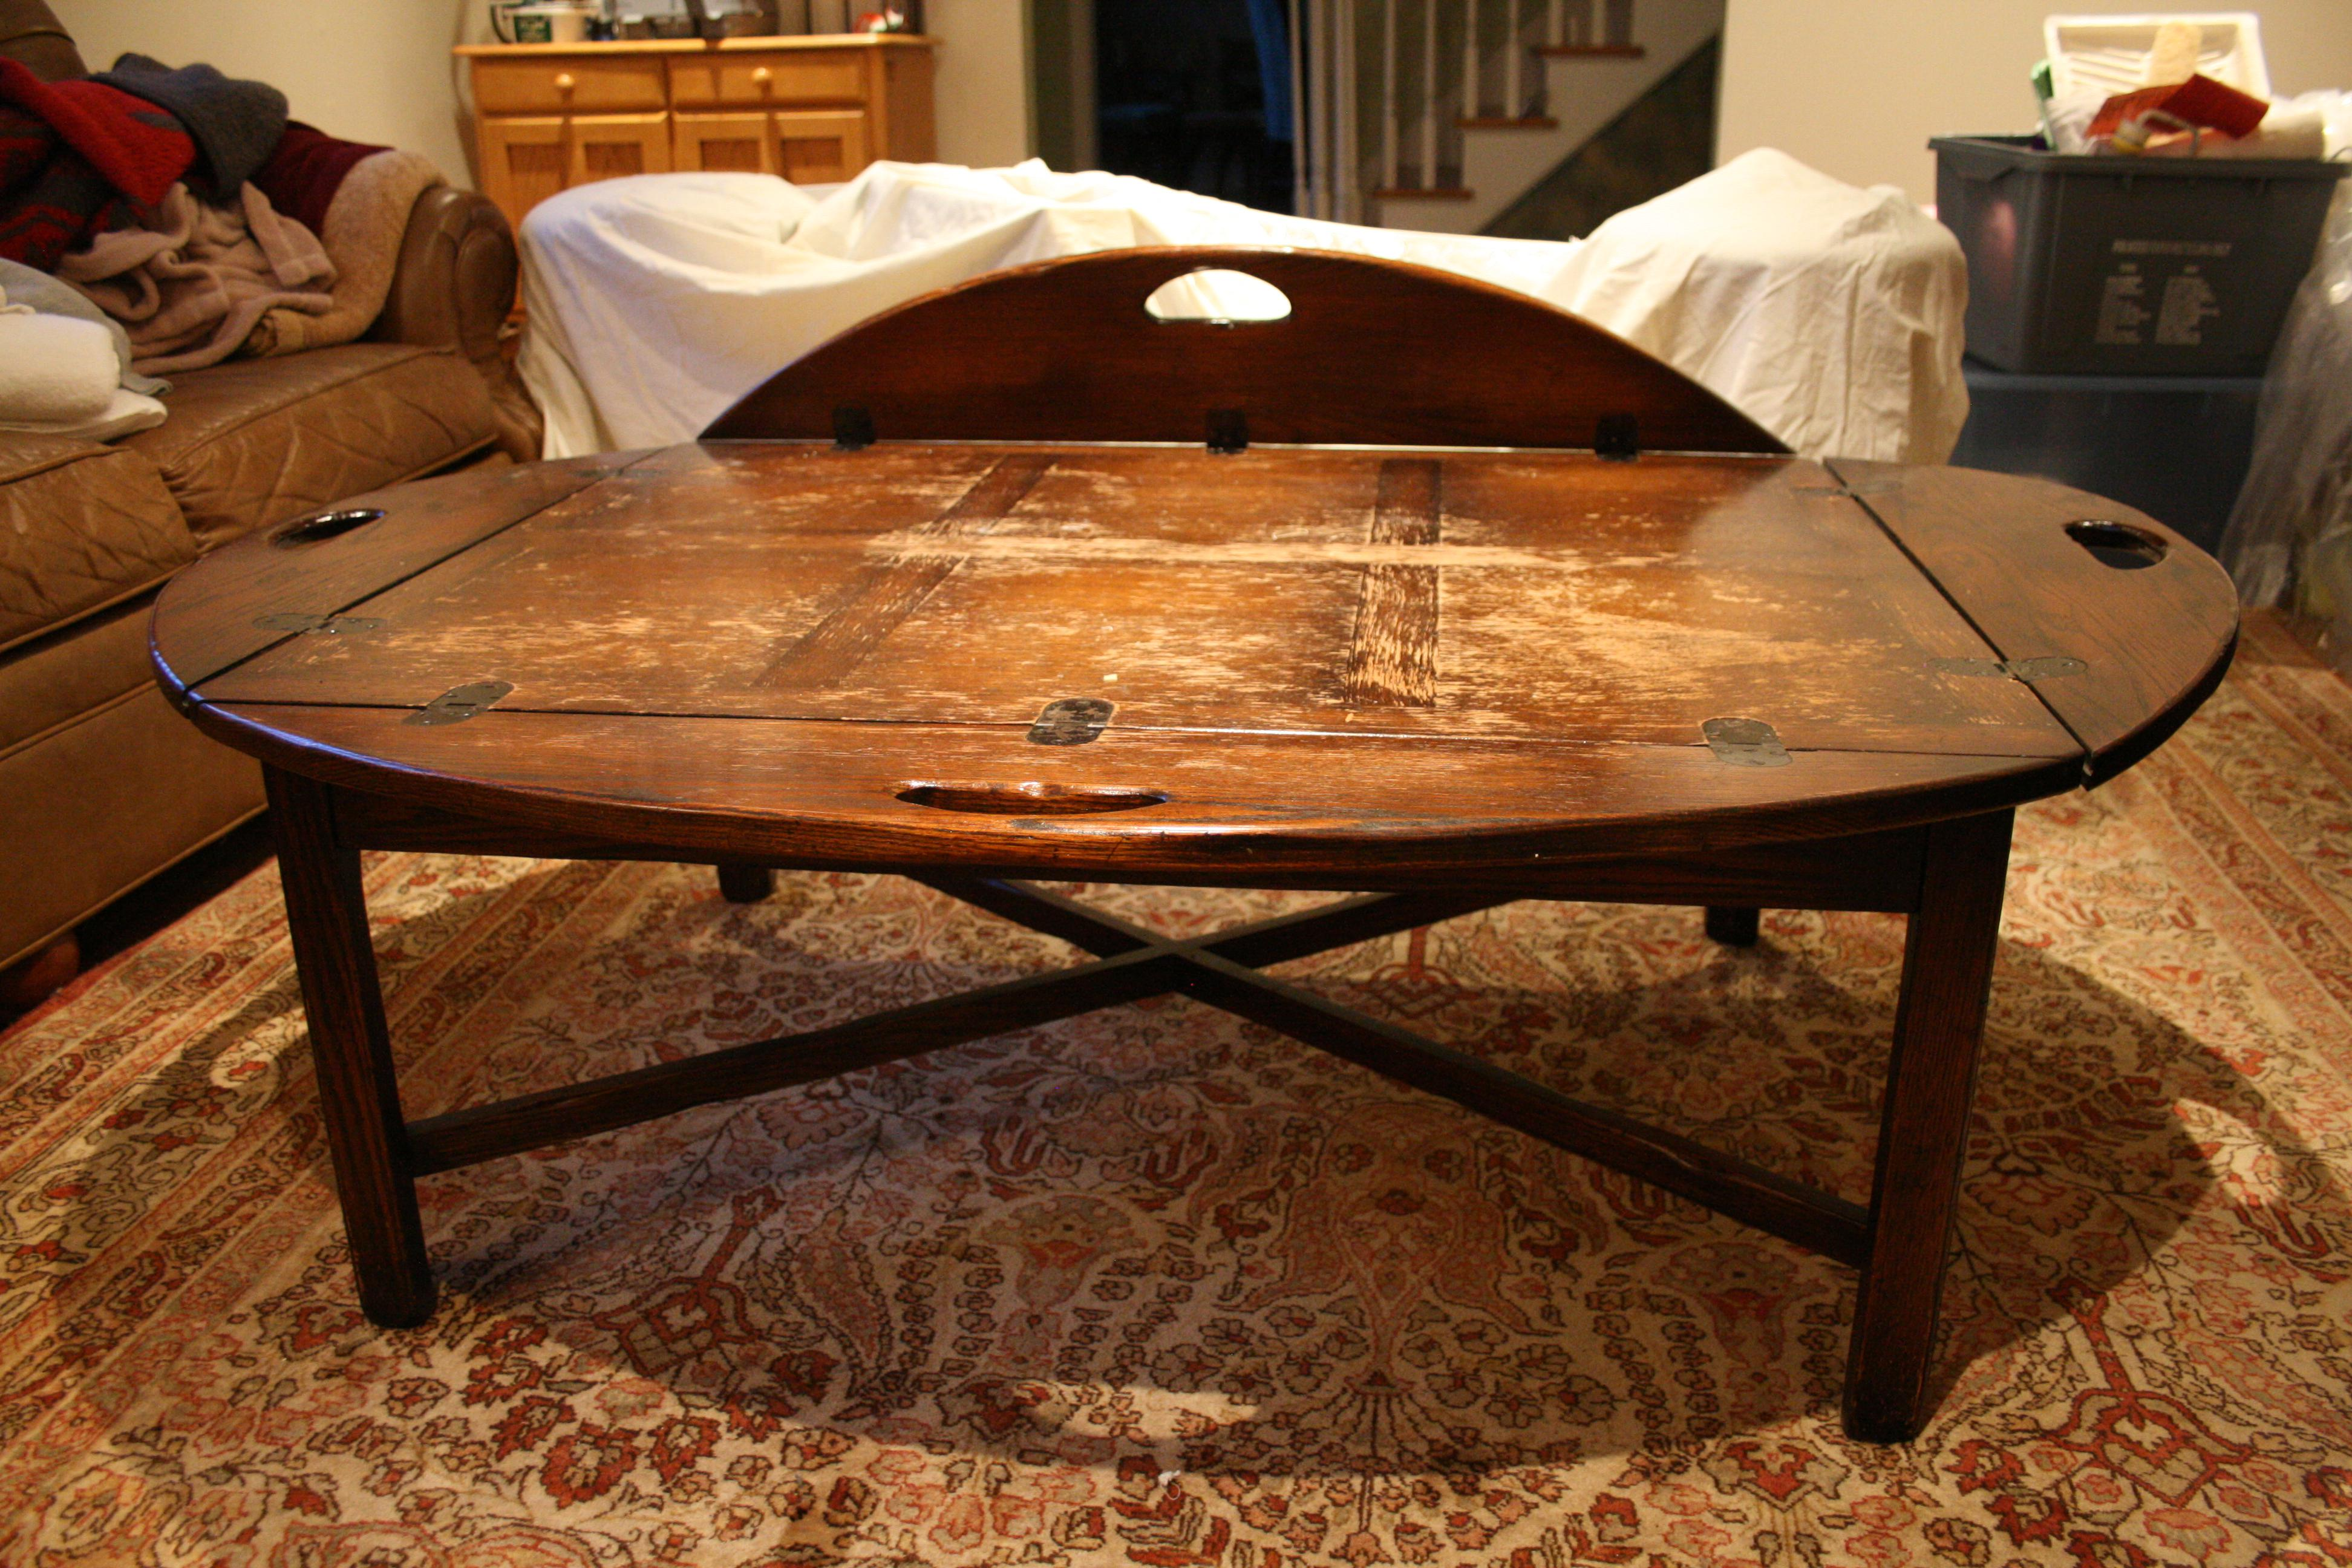 American Antique Style Butleru0027s Tray Coffee Table   Image 4 ...